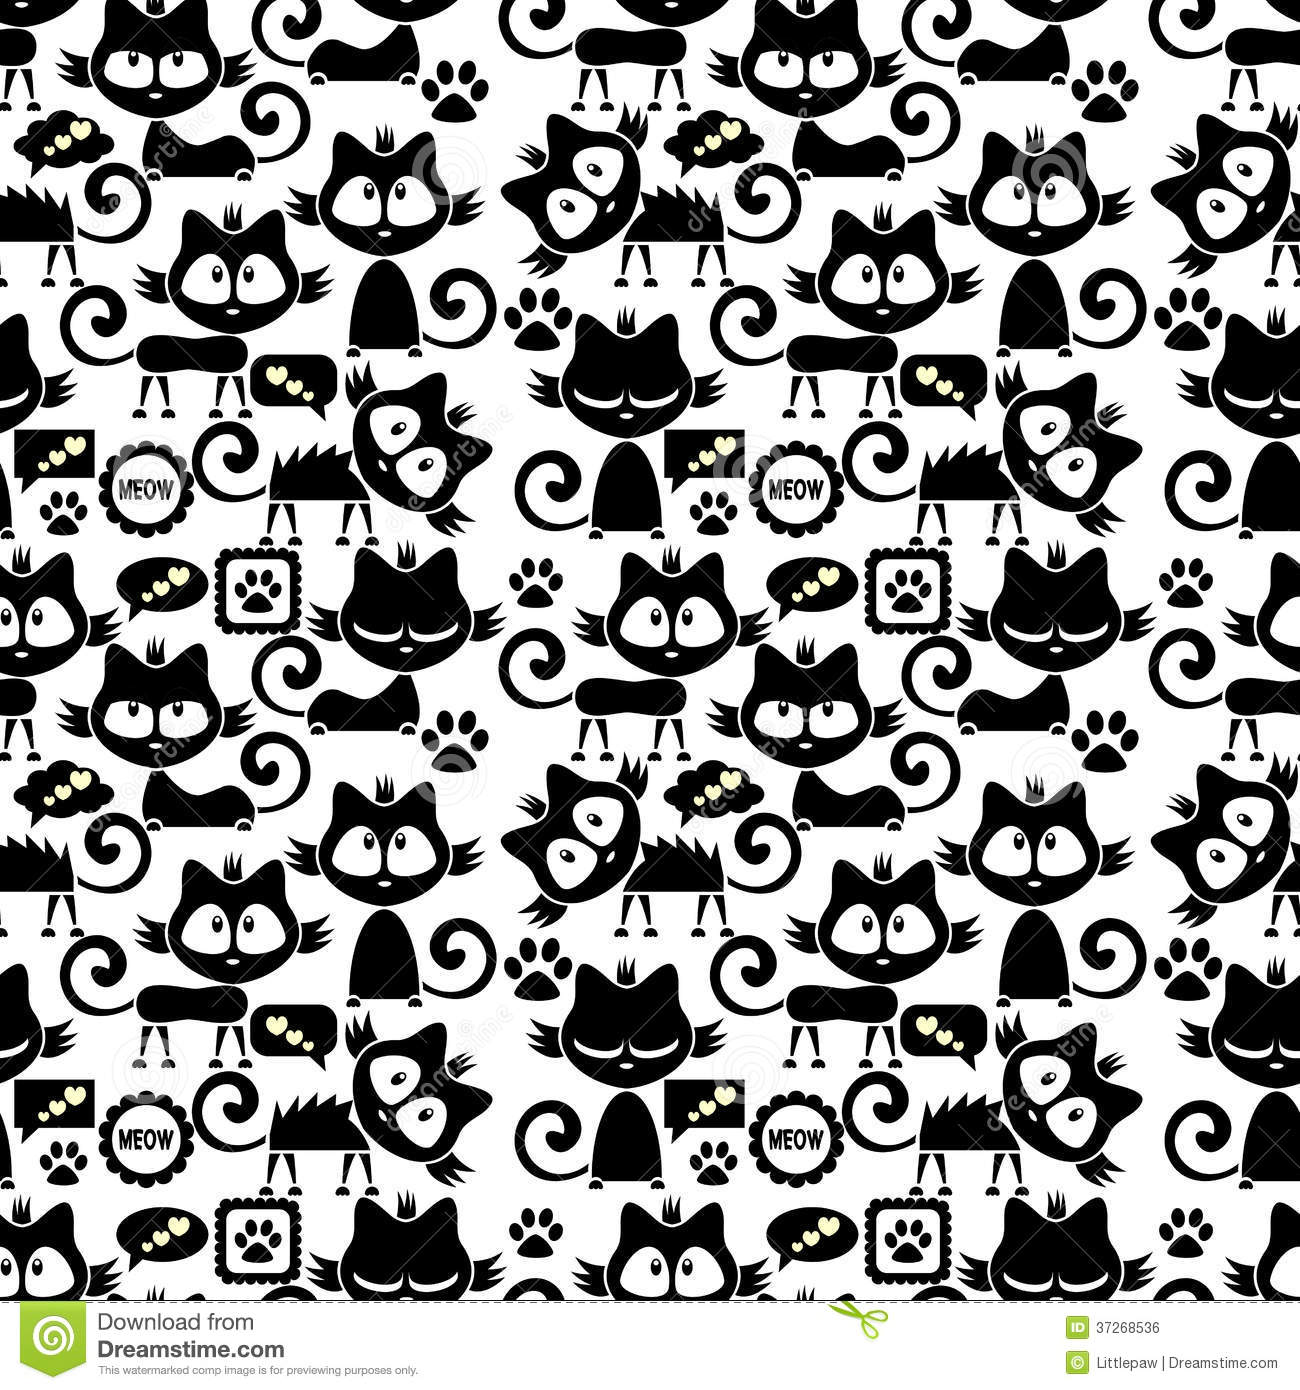 Seamless Pattern With Cute Cartoon Kittens Royalty Free Stock Image ...